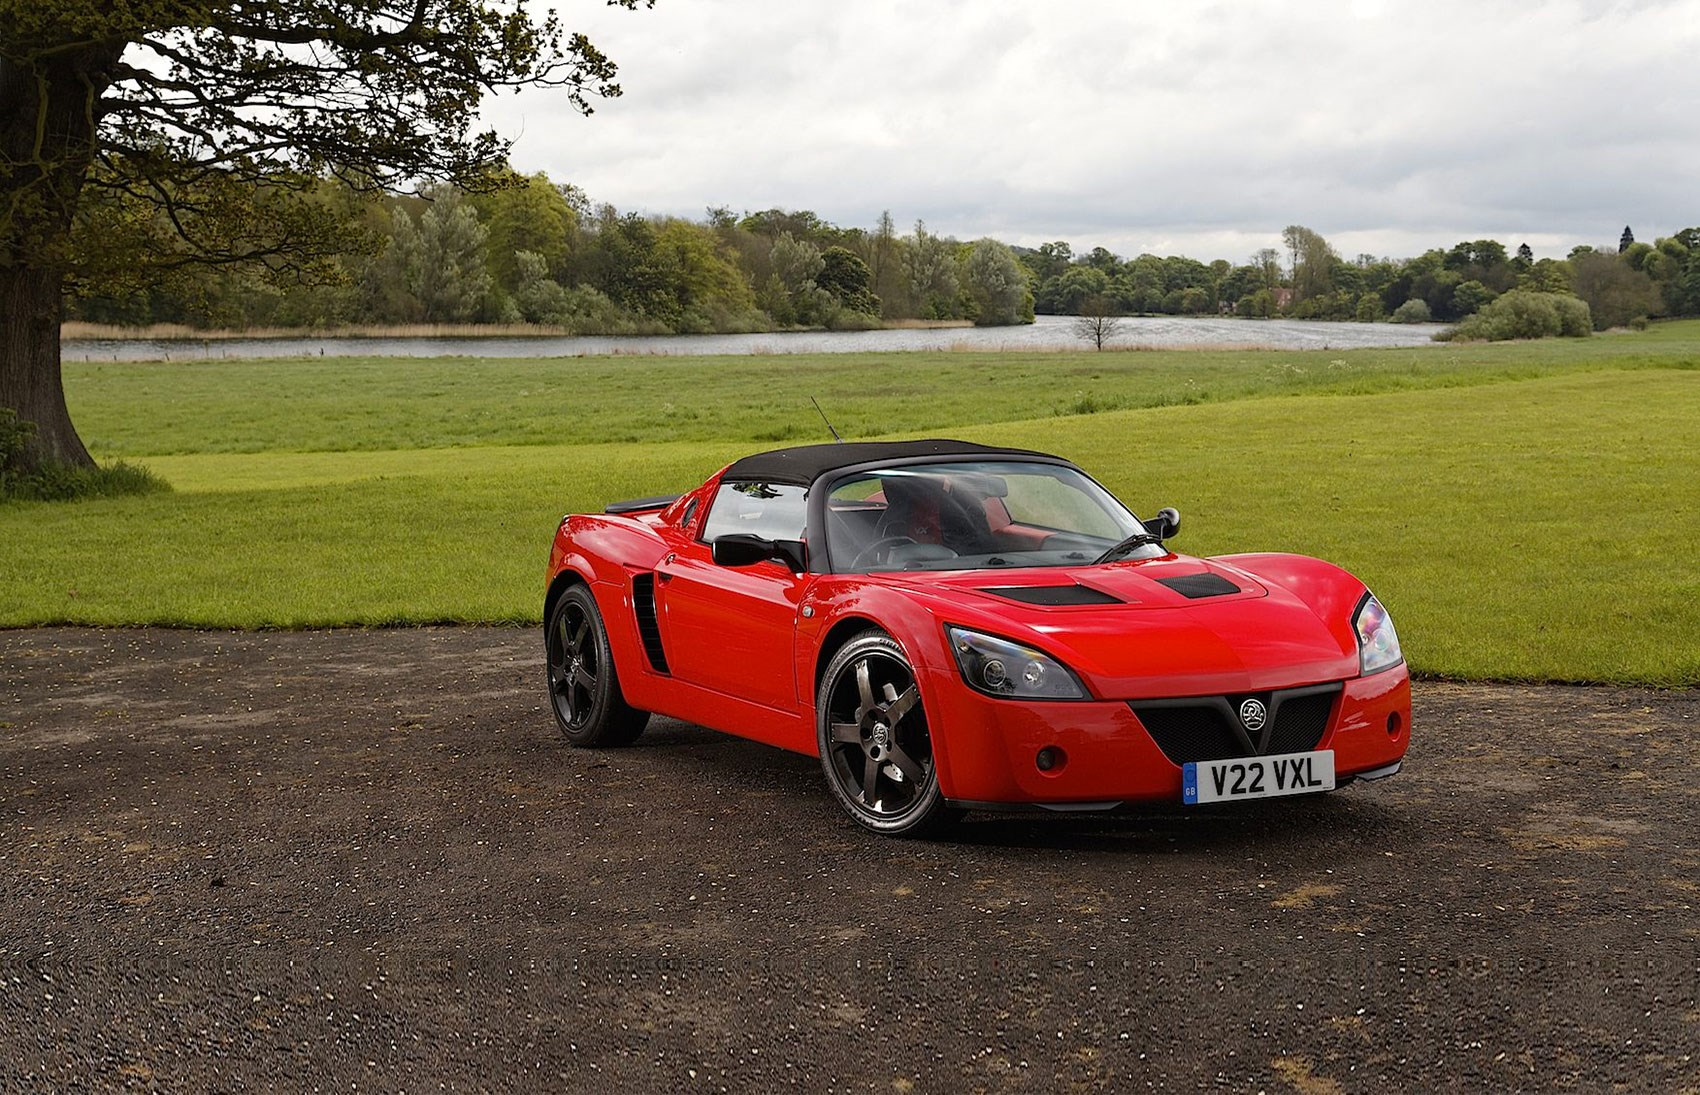 Remembering The Underdogs The 2000 Vauxhall Vx220 Car